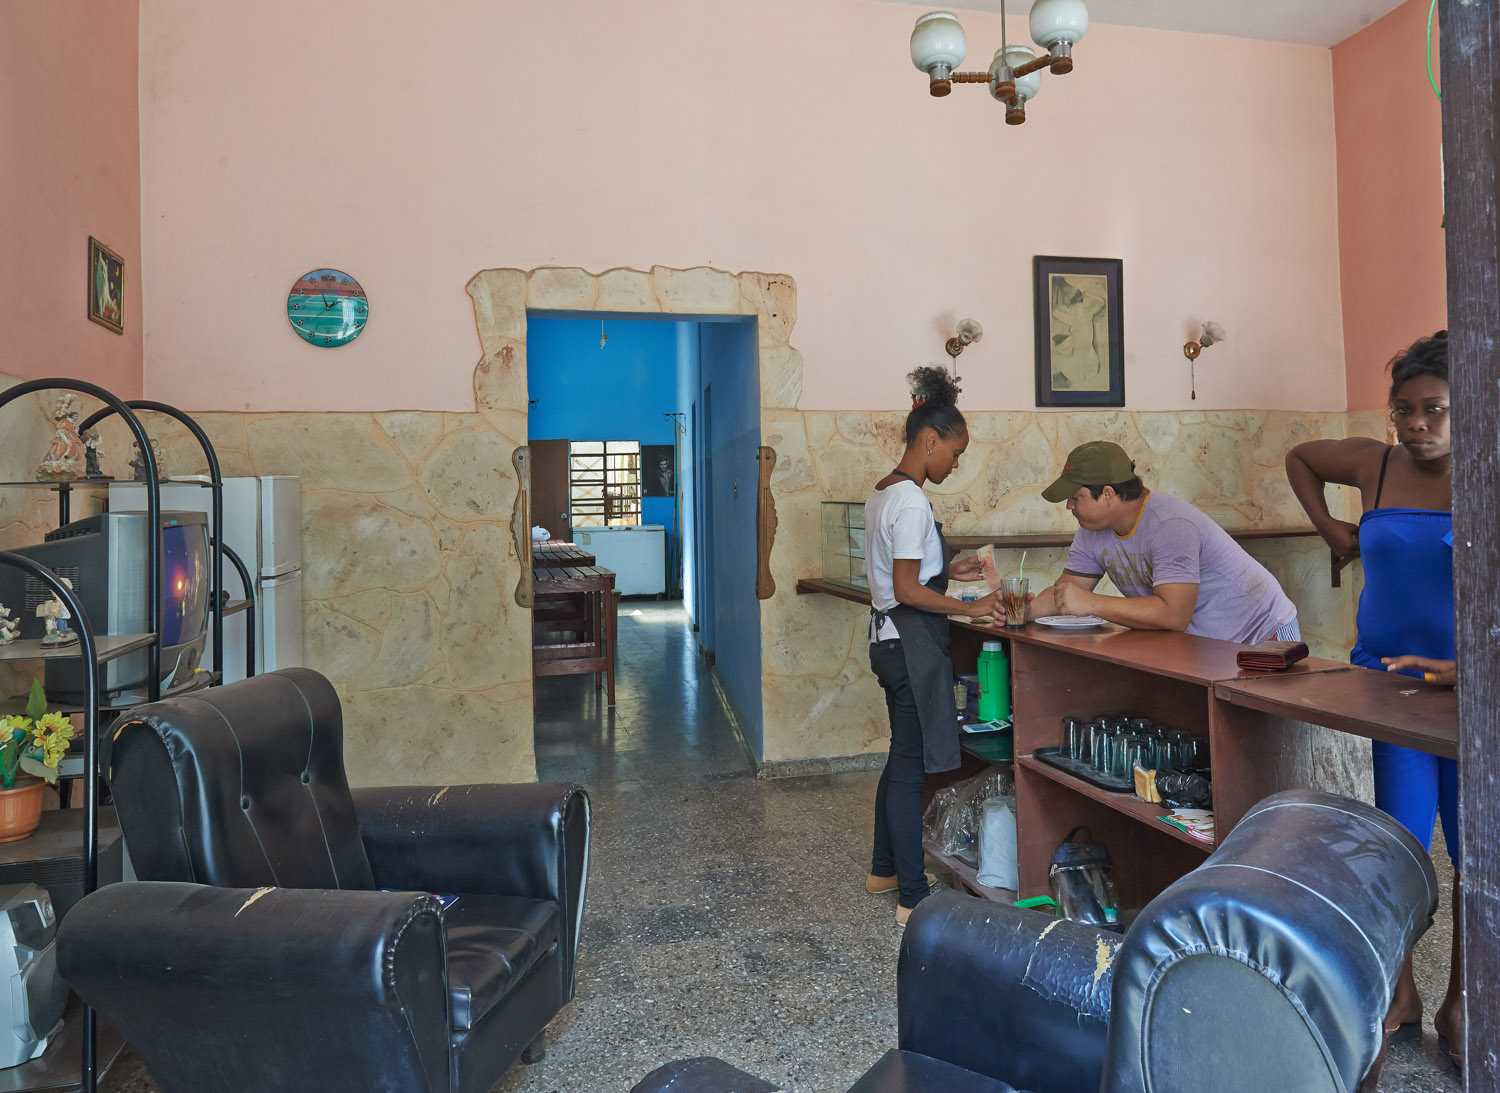 HAVANA. A LIVING-ROOM AS A TAKE-AWAY RESTAURANT. A WAY FOR A LOT OF CUBANS CUBANS TO EARN A LIVING